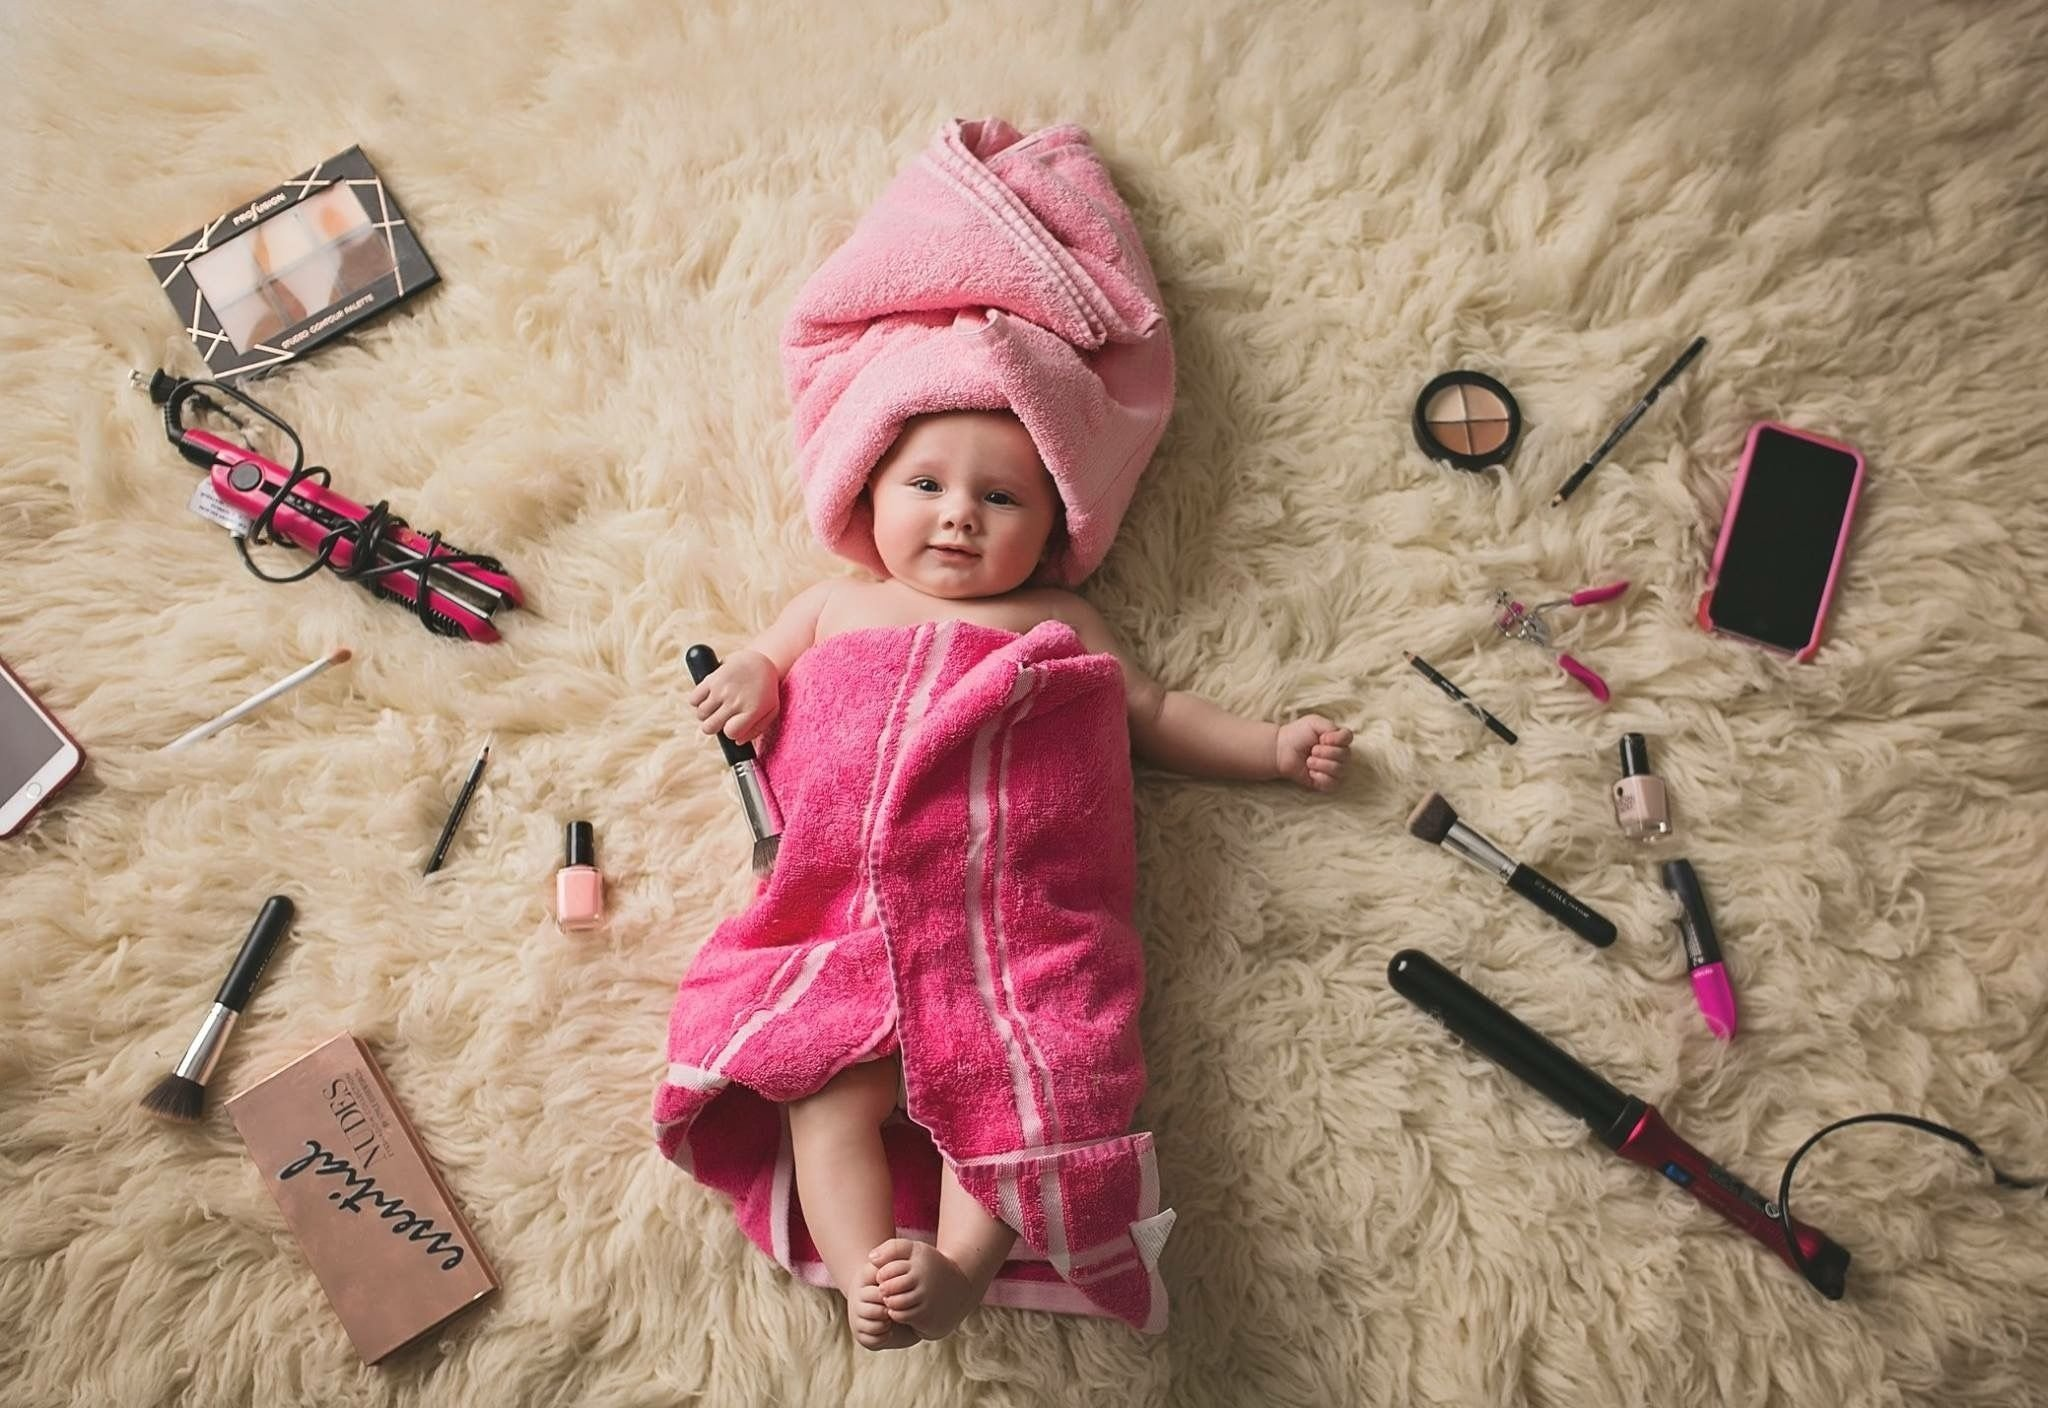 4 month baby girl pink make up towels photography ideas | baby girl